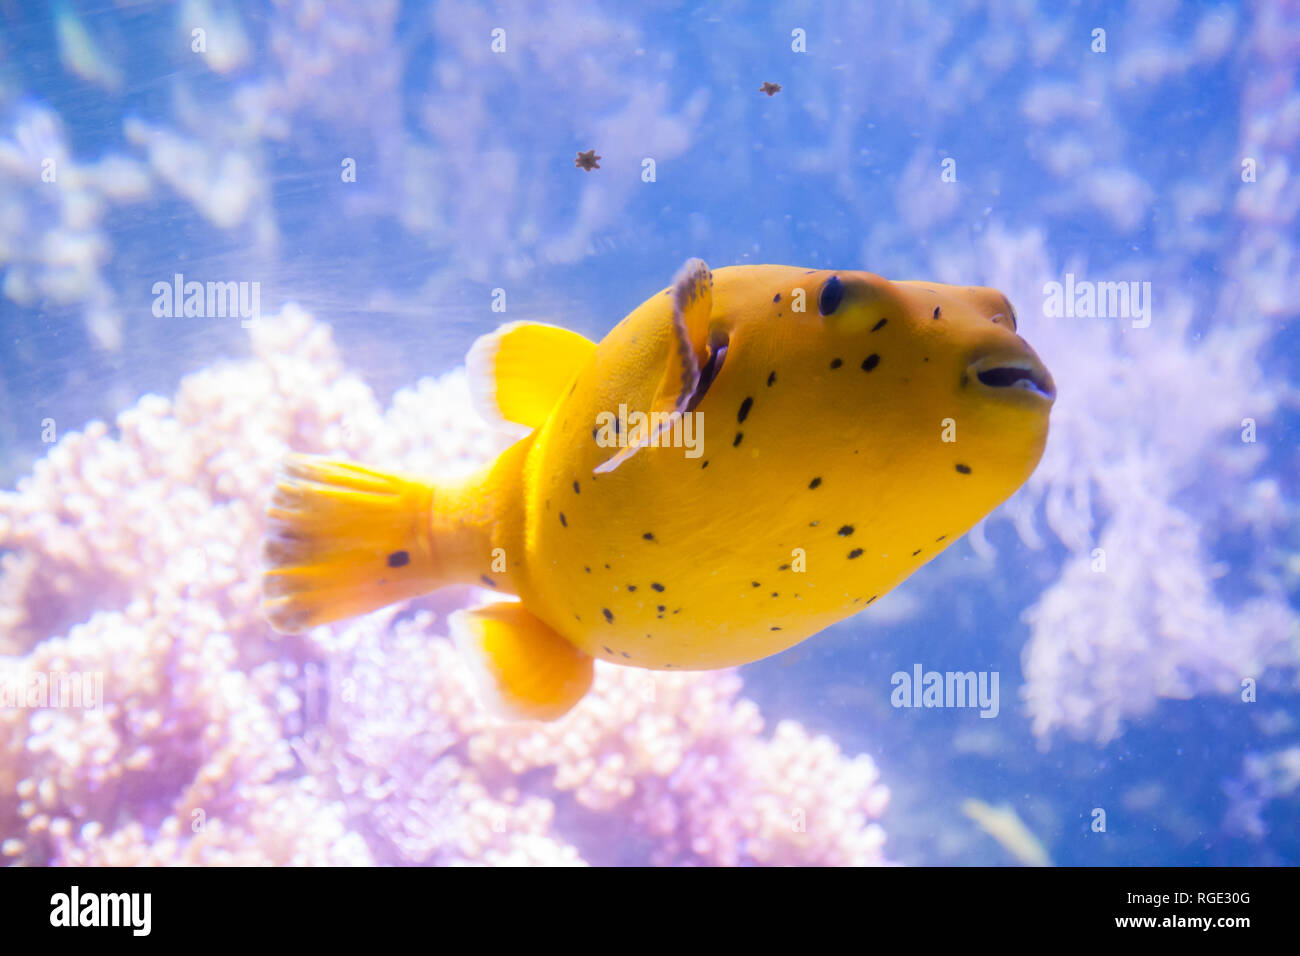 Yellow Blackspotted Puffer Or Dog-faced Puffer Fish - Arothron Nigropunctatus. Wonderful and beautiful underwater world with corals and tropical fish. Stock Photo